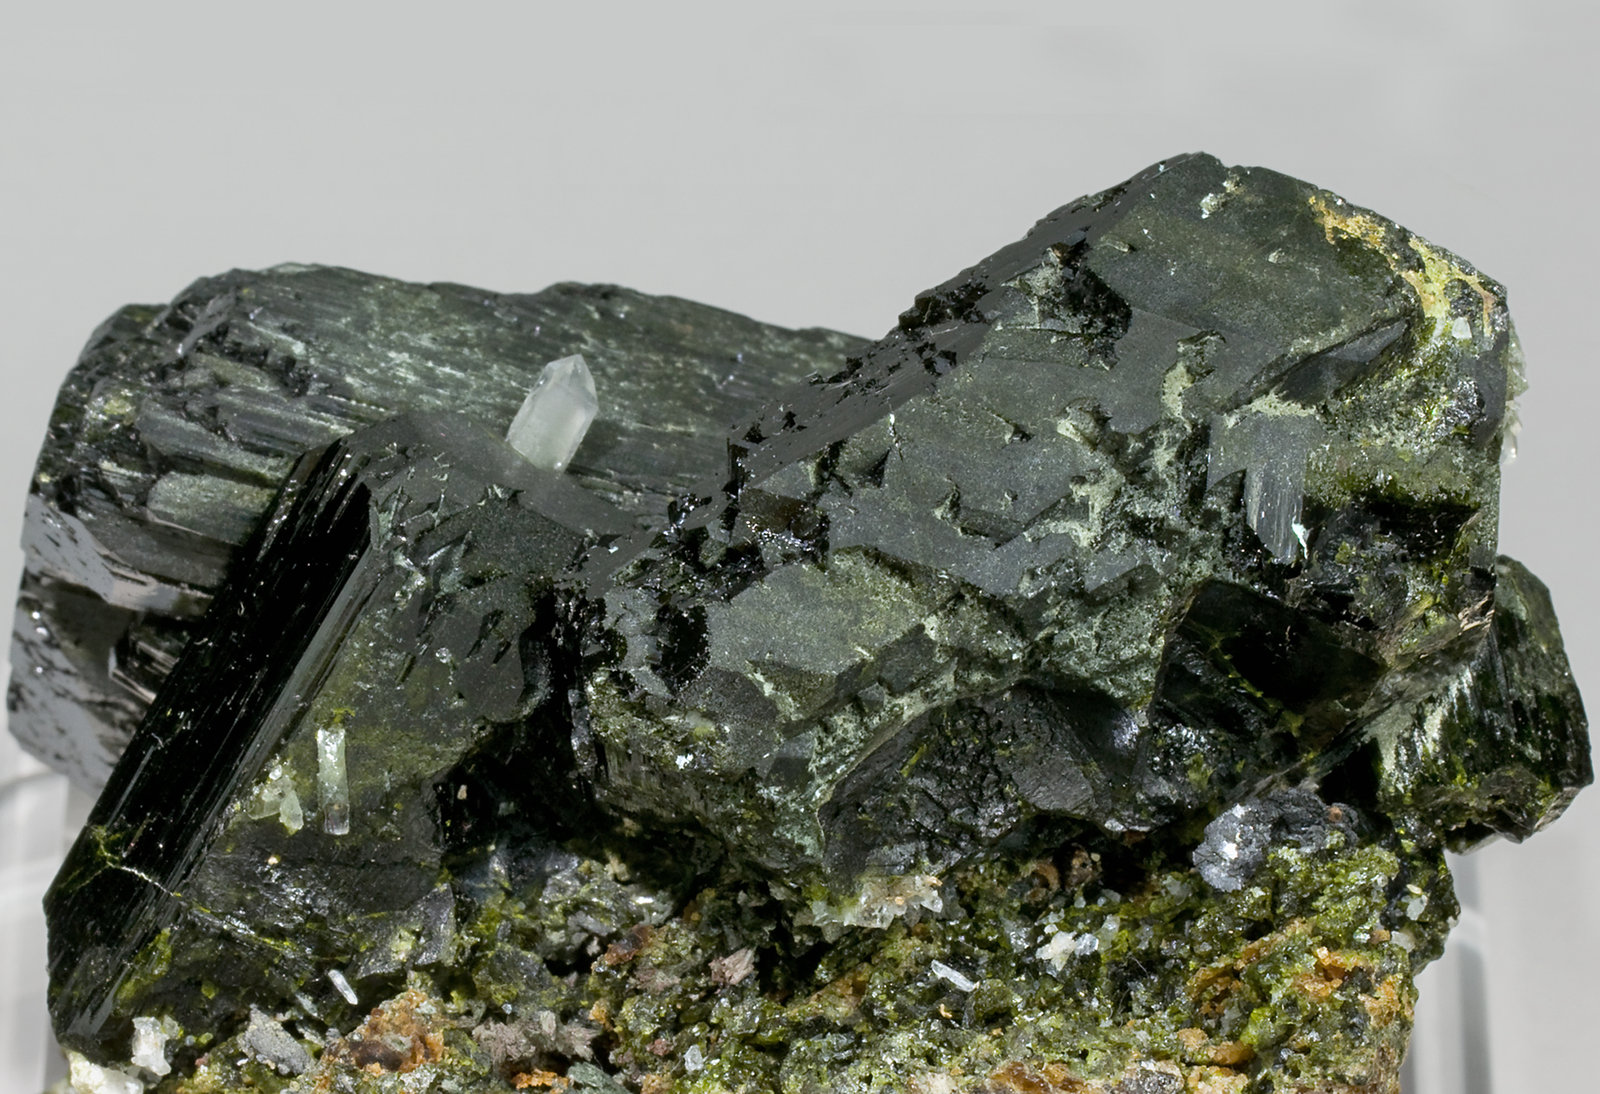 specimens/s_imagesT8/Epidote-TB47T8r.jpg